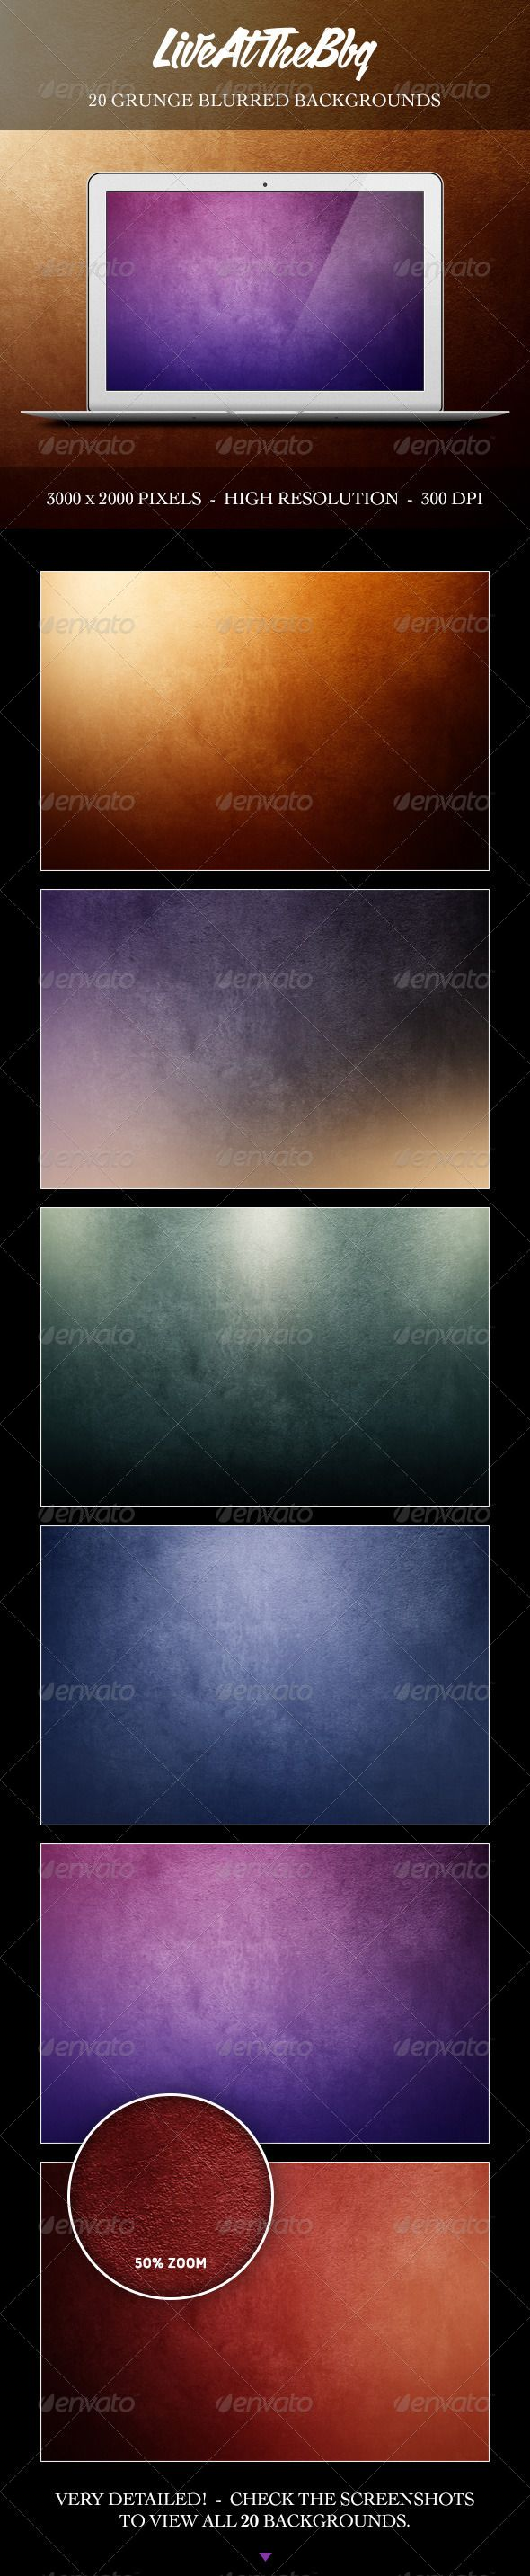 Grunge Blurred Backgrounds. High resolution backdrops for presentation, flyer design, webdesign textures and more! 20 unique jpg files on 300 DPI. A great timesaver for you next graphic design projects.